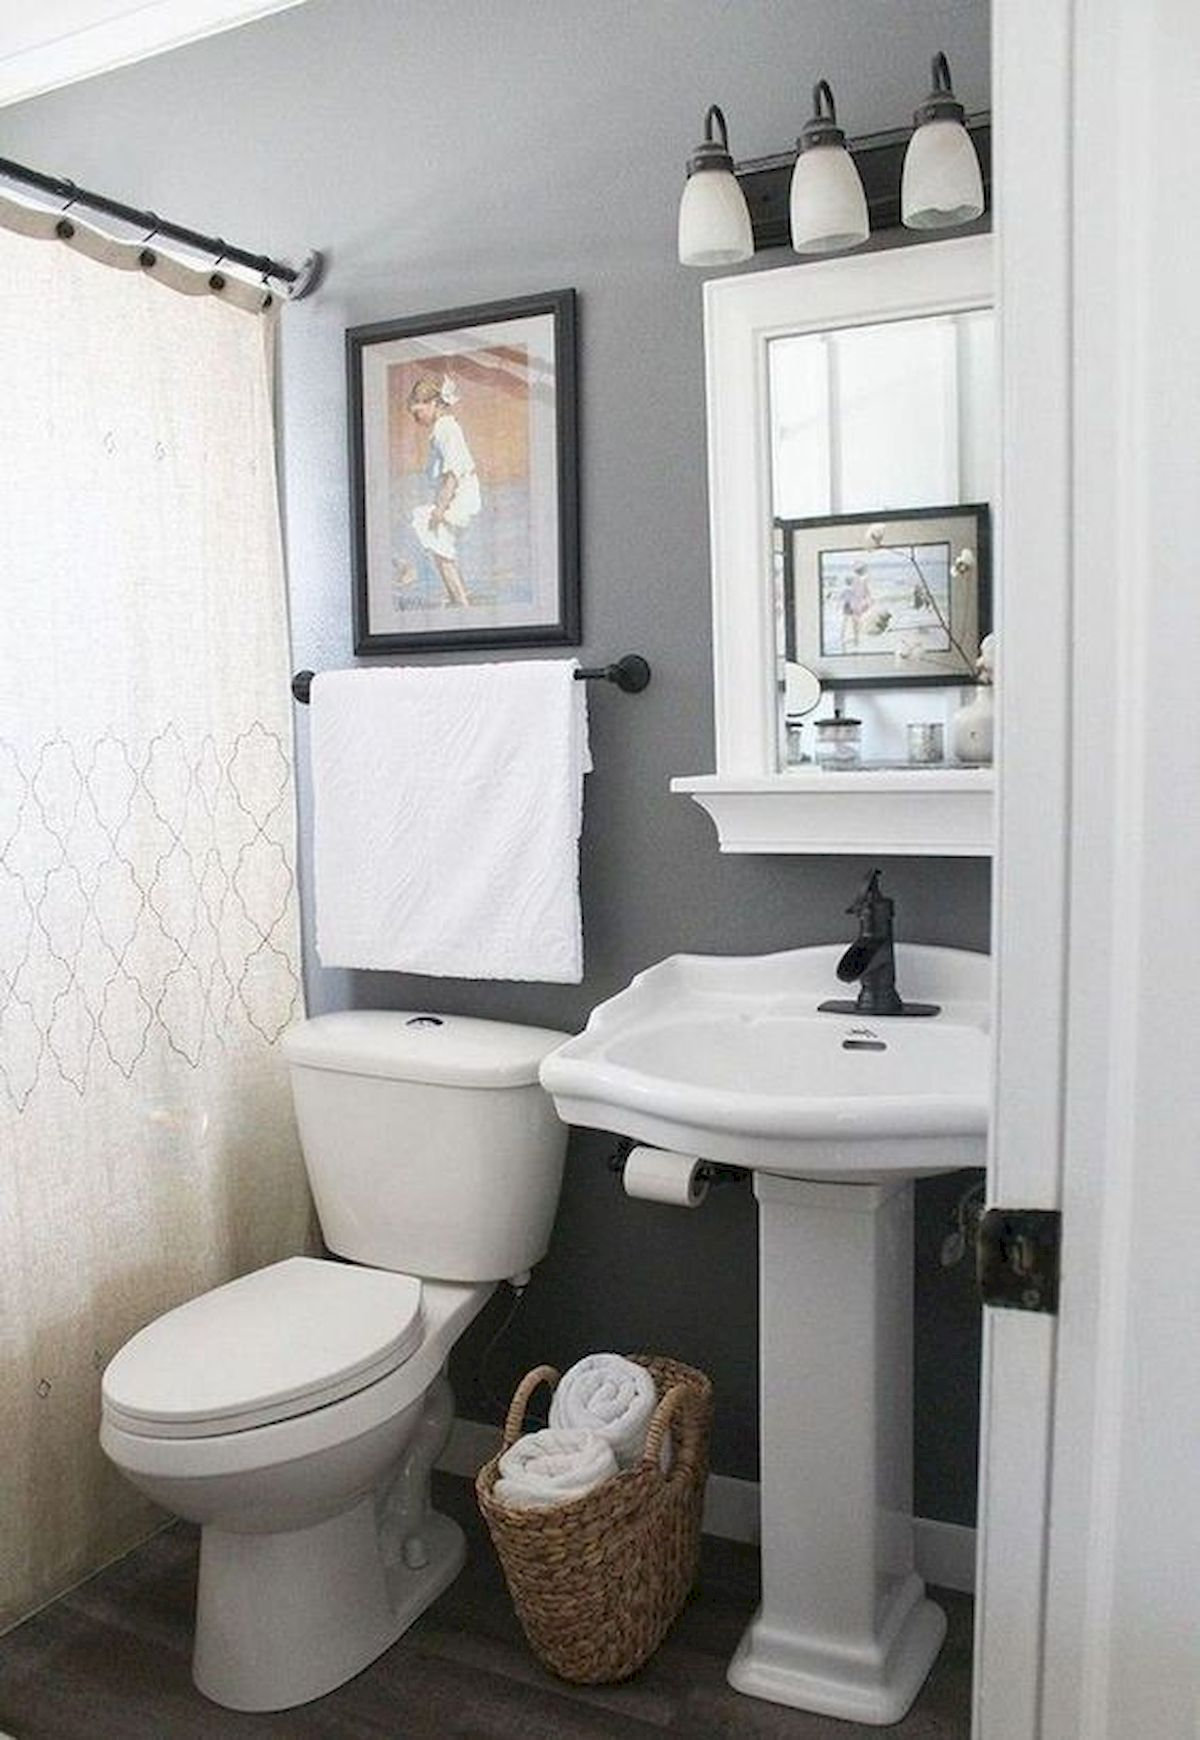 50 Best DIY Storage Design Ideas to Maximize Your Small Bathroom Space (38)